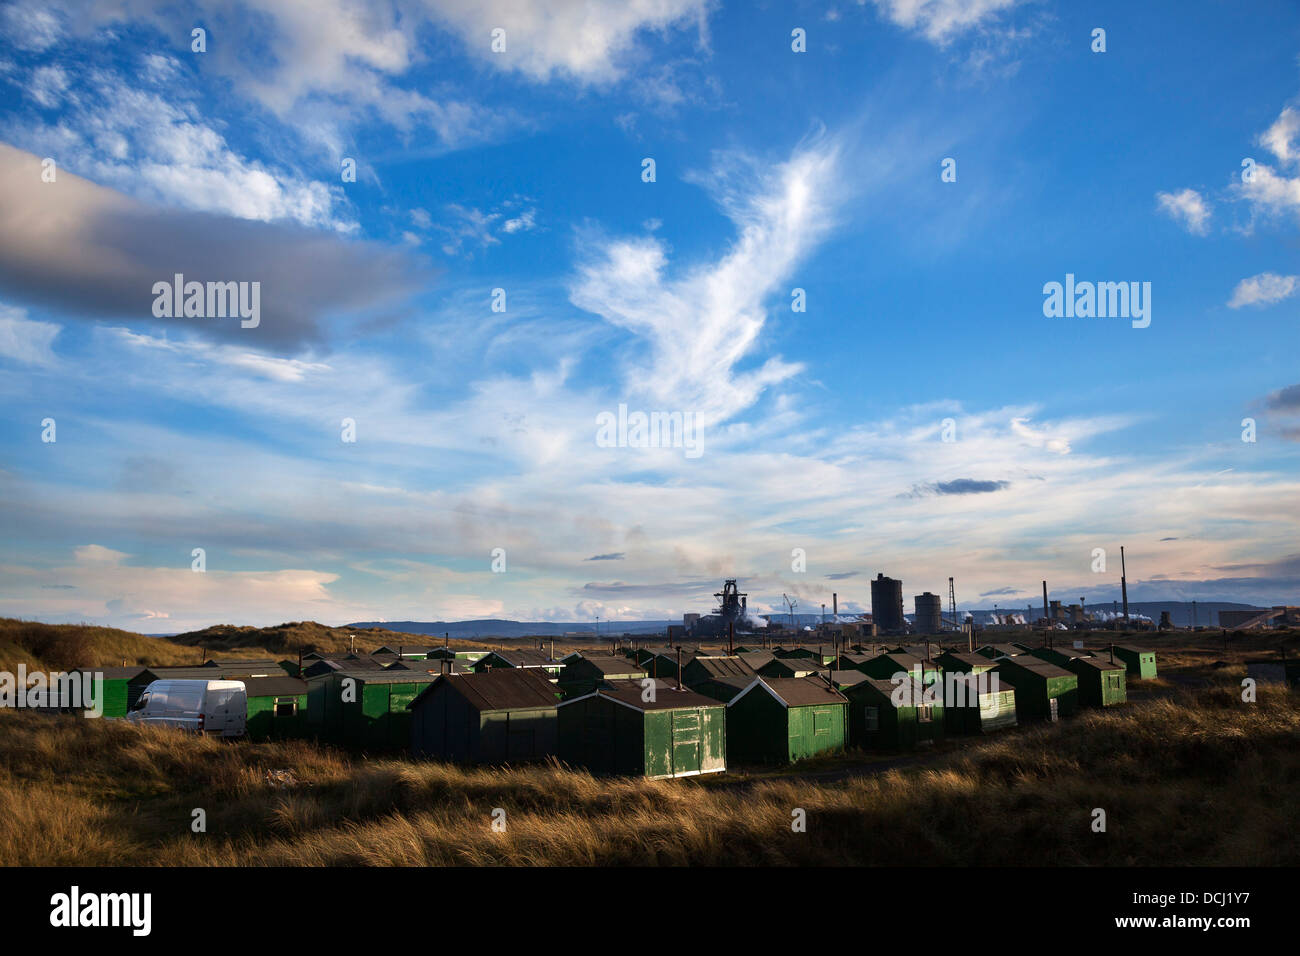 South Gare Fishermens Huts and Steelworks, Redcar - Stock Image